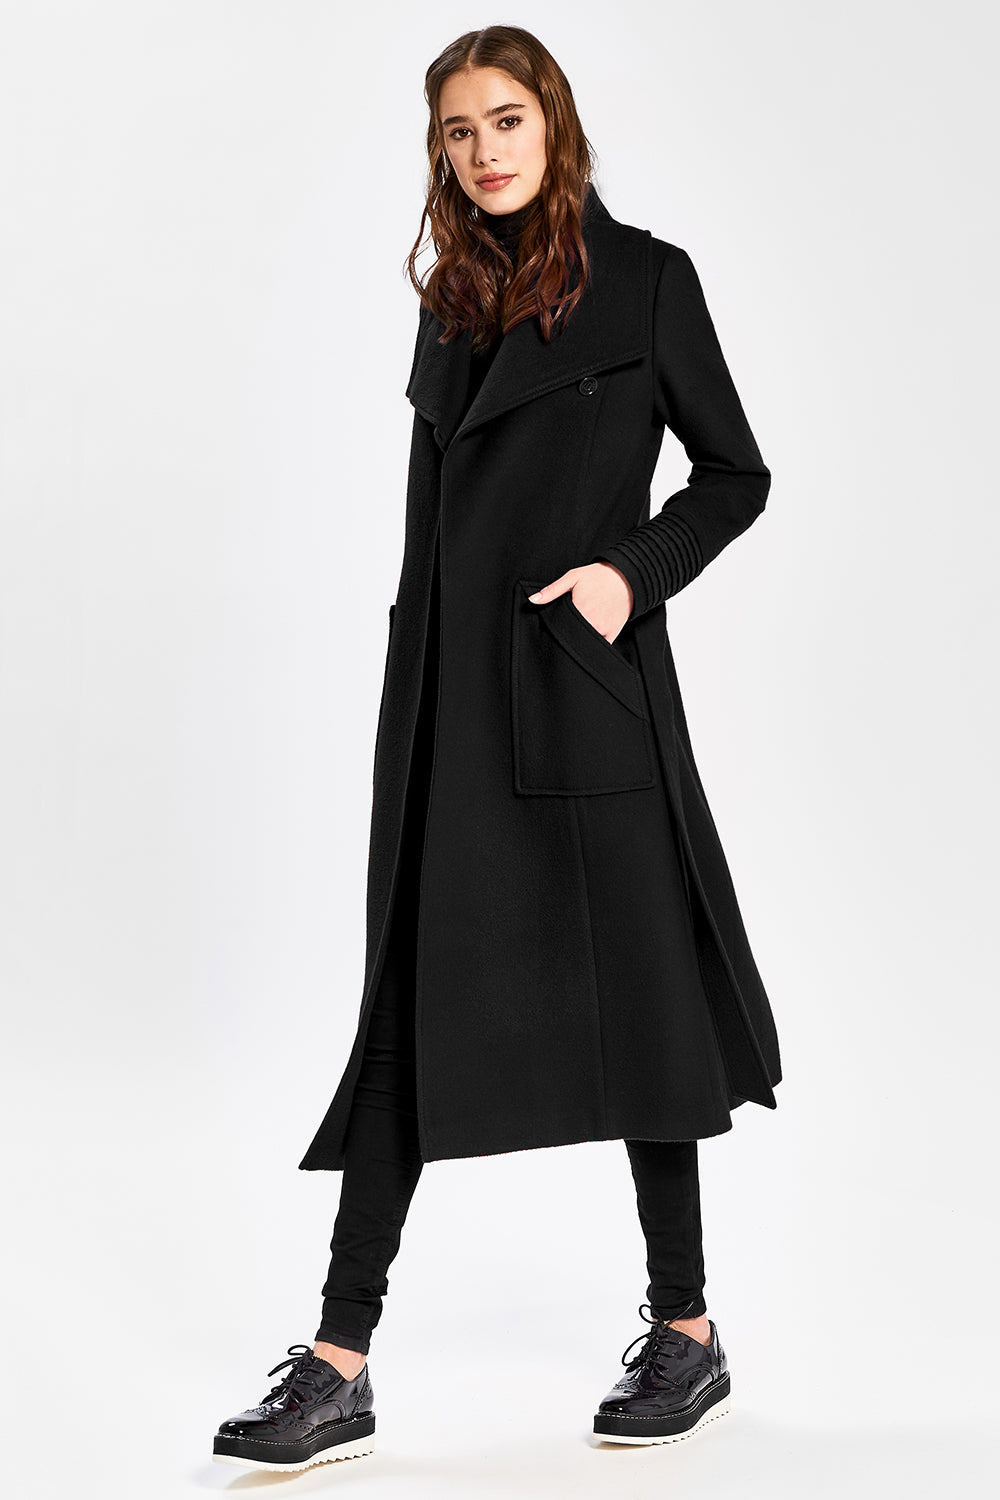 Sentaler Long Wide Collar Wrap Coat featured in Baby Alpaca and available in Black. Seen from side.